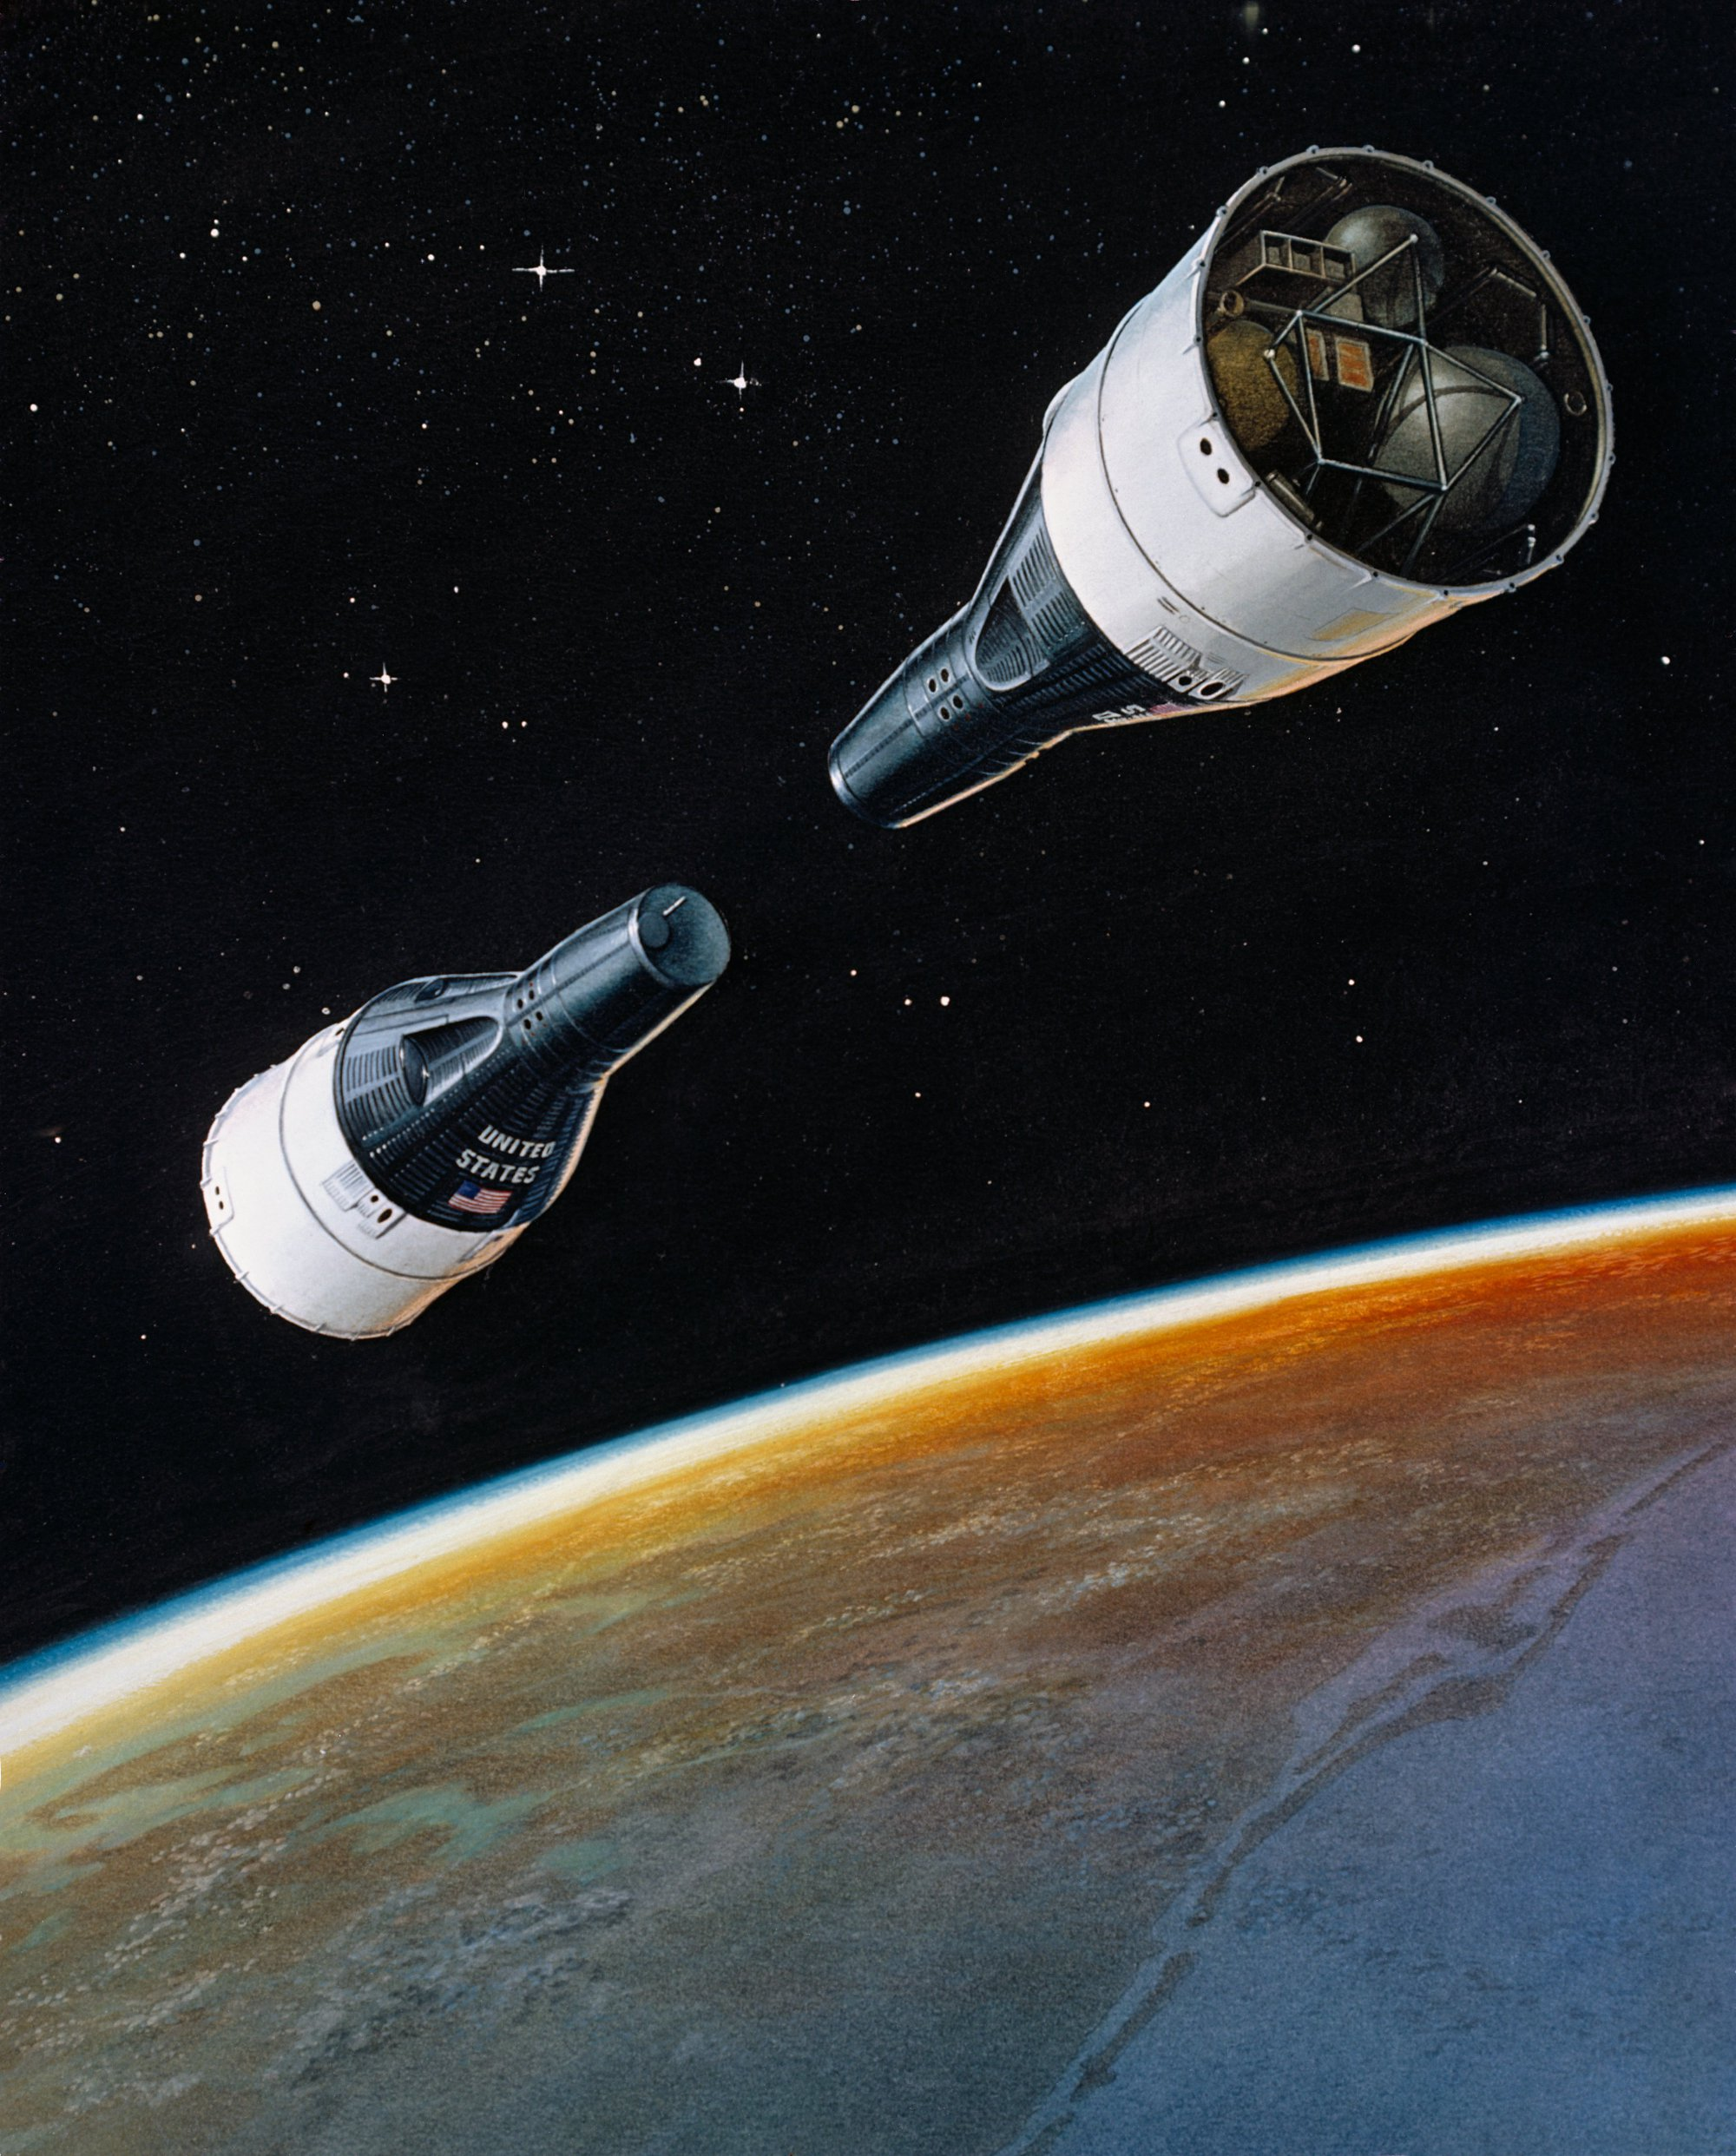 Artist concept depicting the approximate positions which the GT-VI-A and GT-VII Spacecrafts will be oriented at the terminal phase of their rendezvous mission.